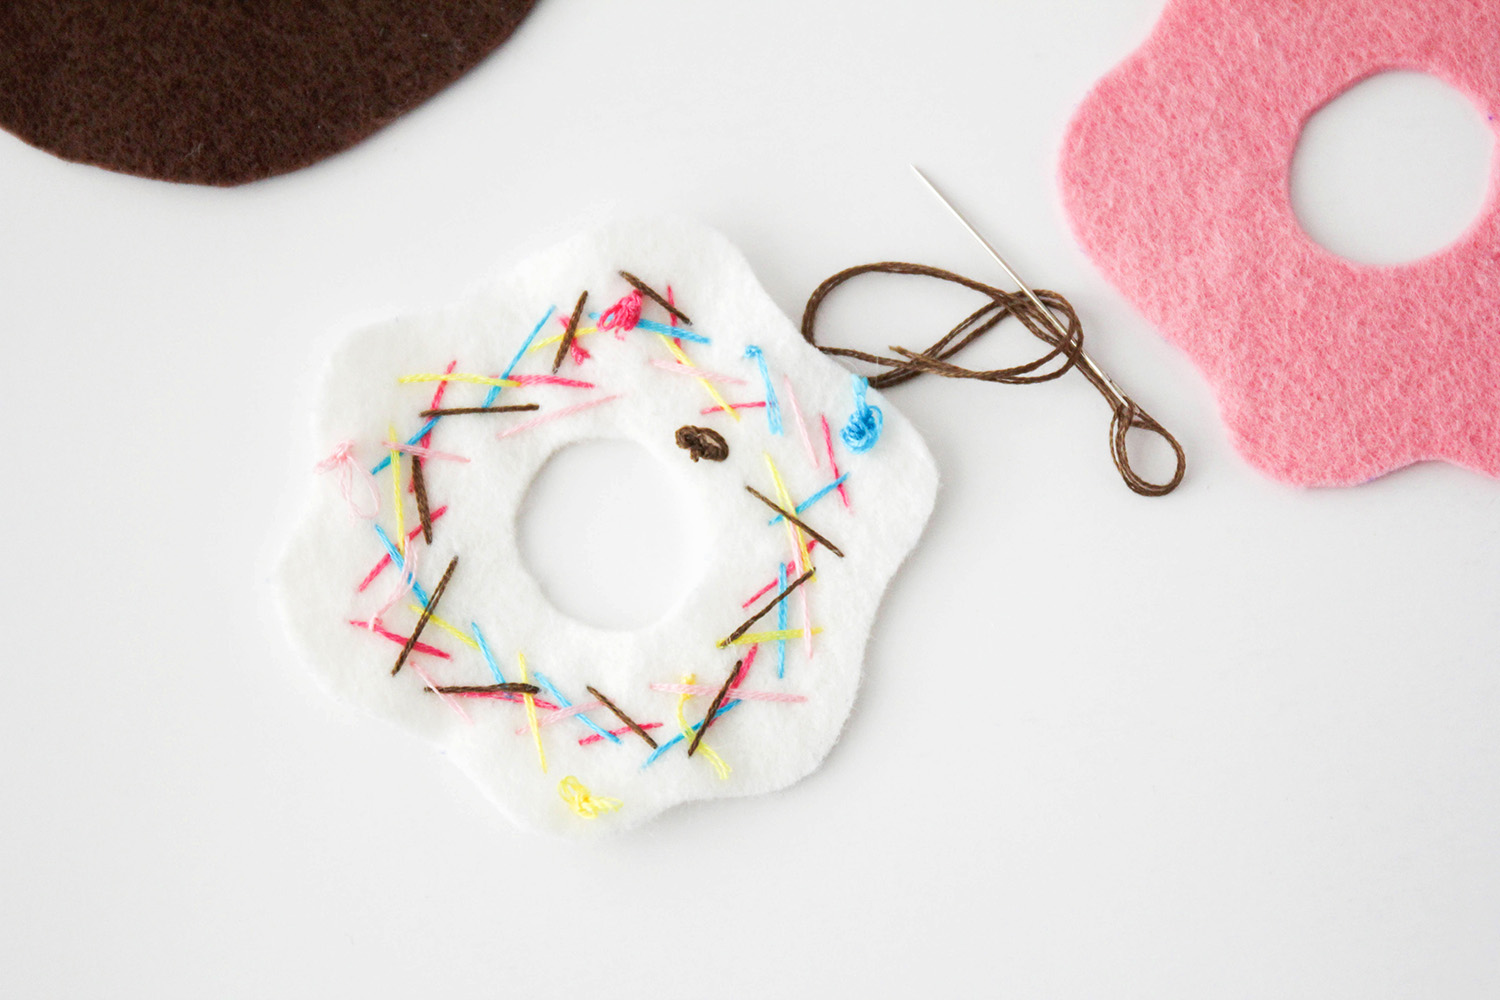 These hand-sewn donut ornaments are so adorable and easy to make, too!